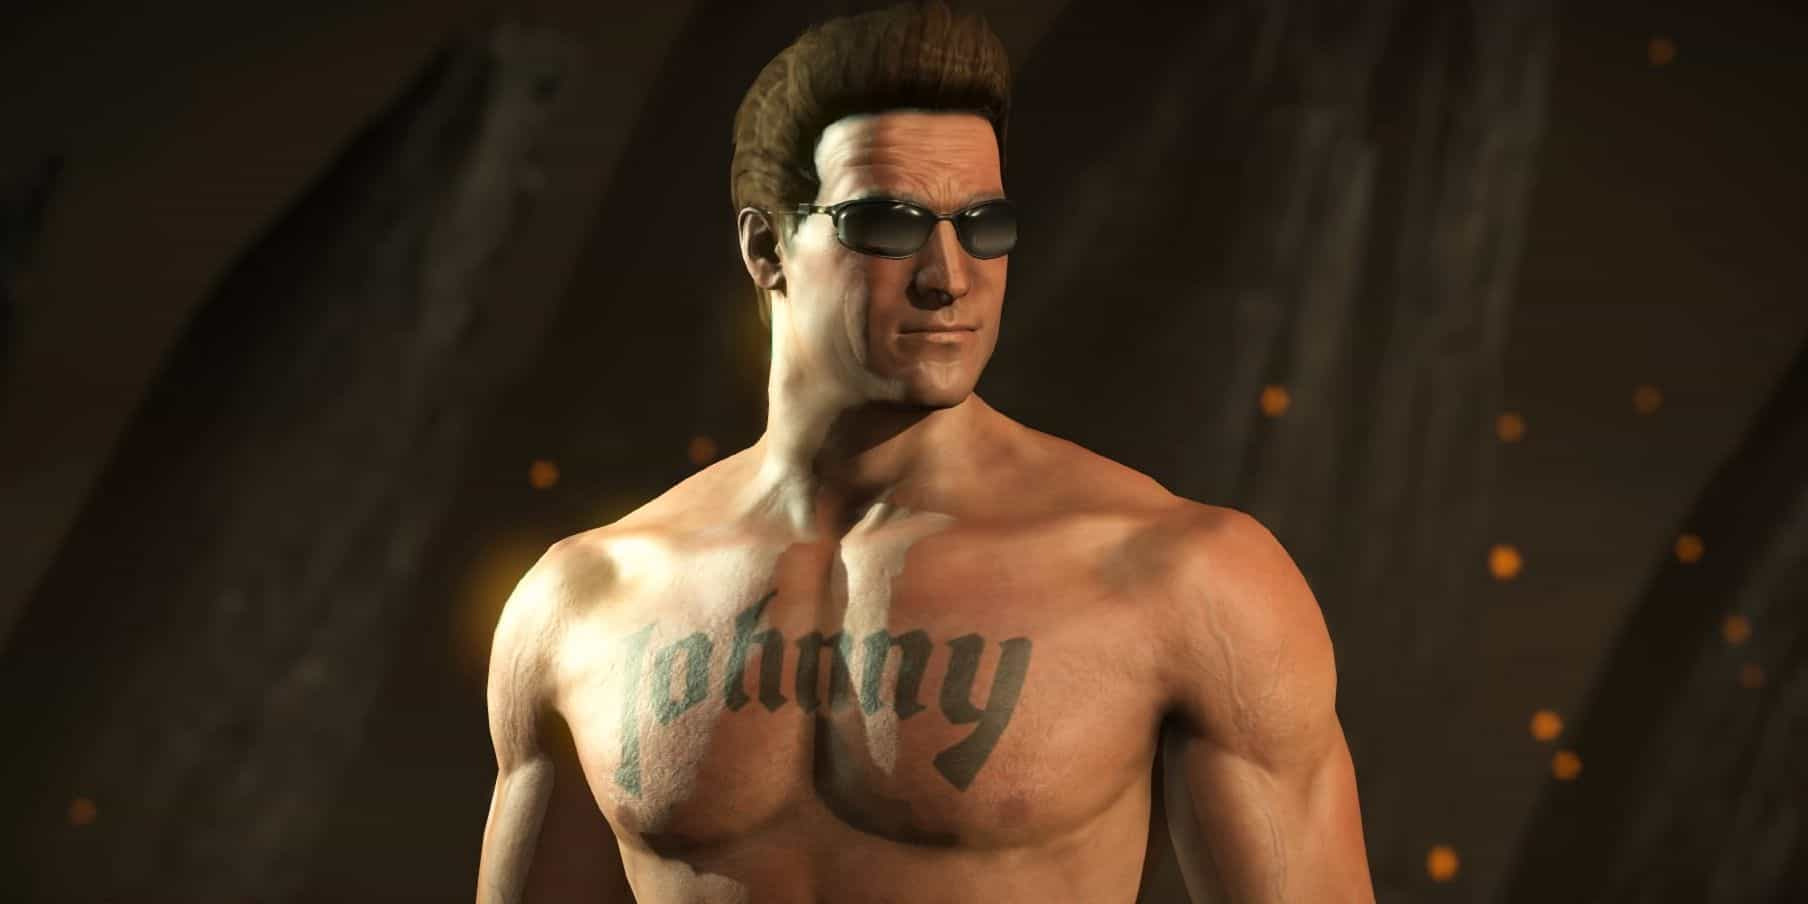 Will Johnny Cage Be In The Upcoming Mortal Kombat Movie?